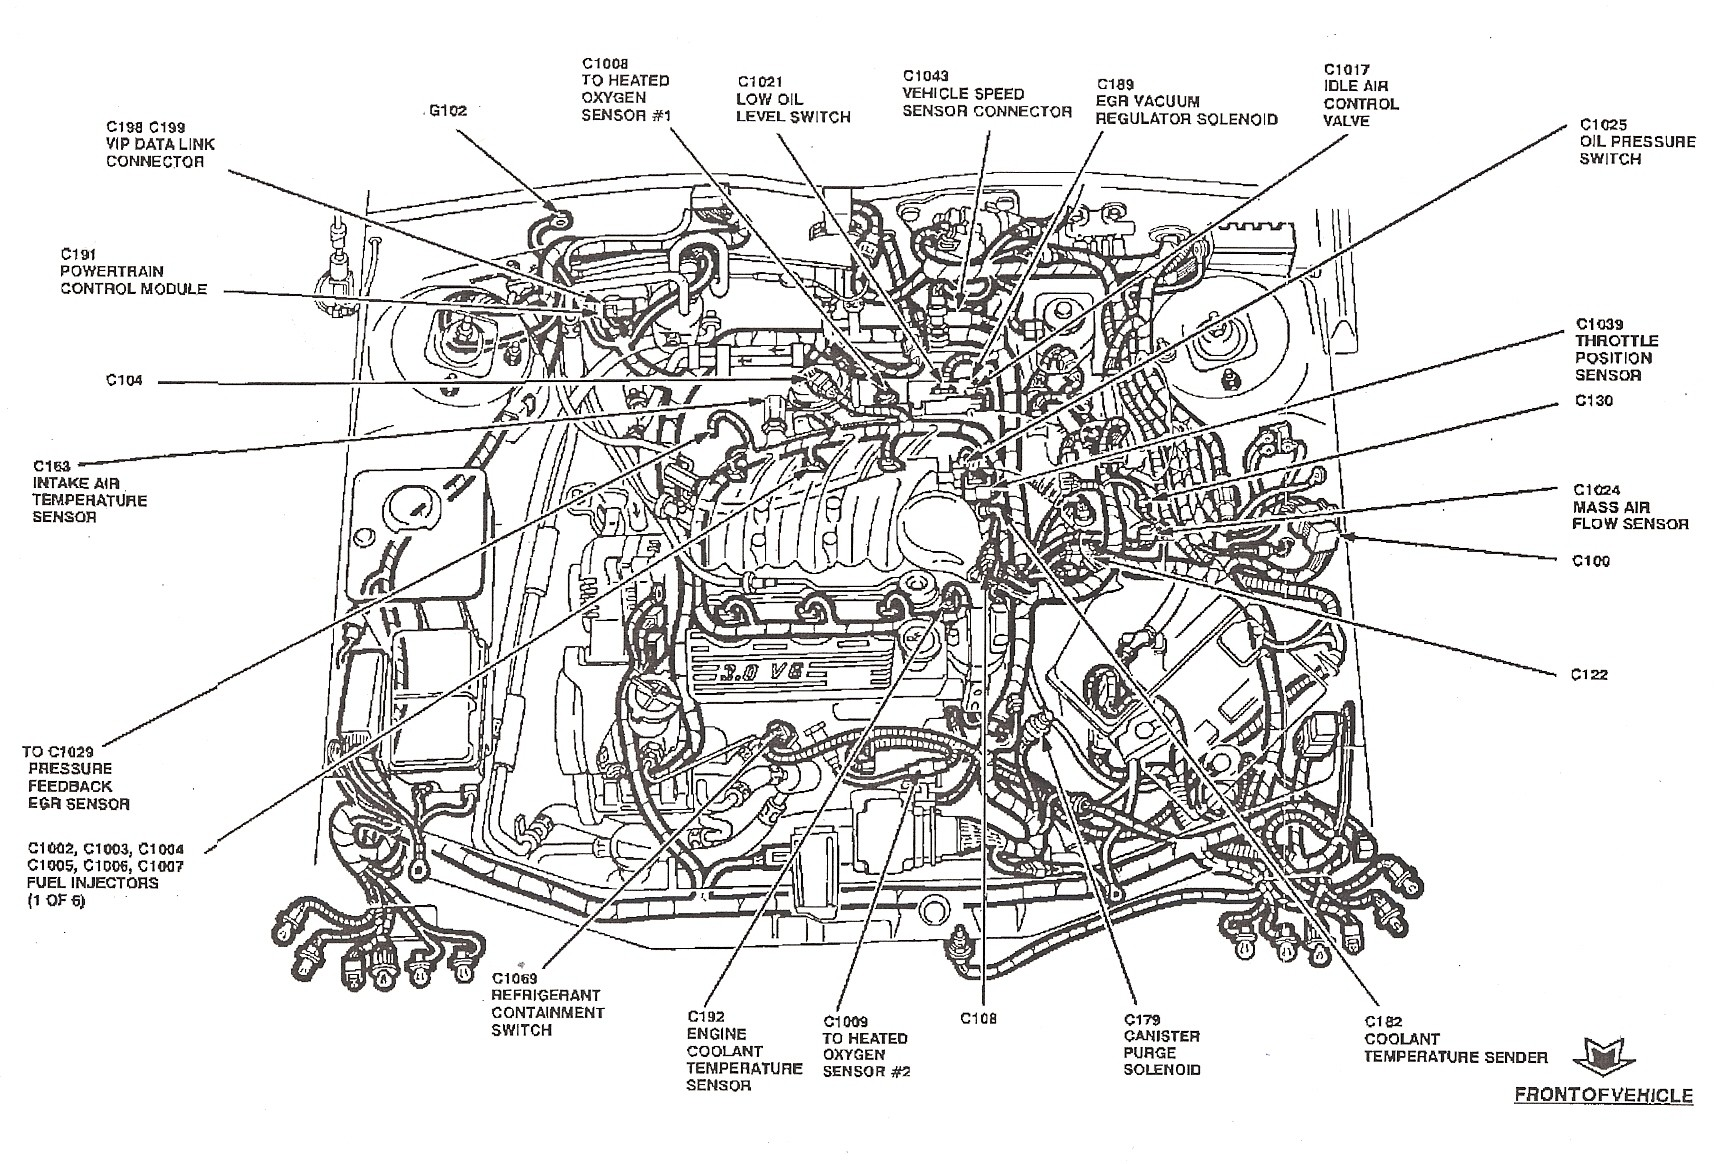 F150 4 6 Engine Diagram Wiring Library Vacuum Solenoid Ford Zetec Diagrams Instructions Of